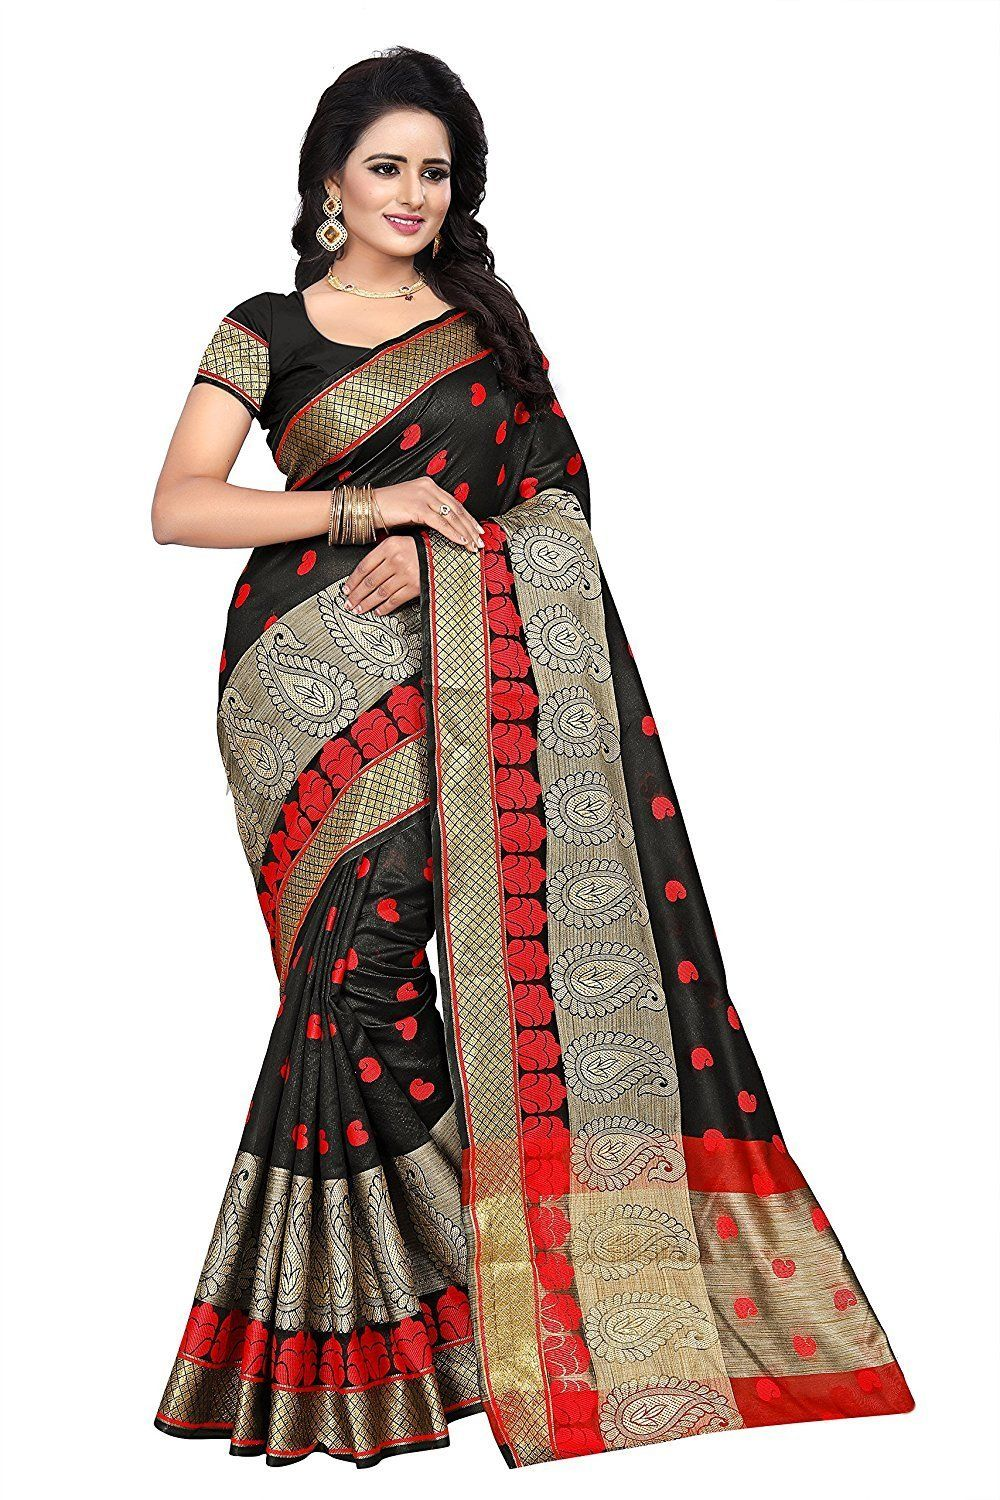 Shiroya brothers womenus clothing saree collection in multicolored